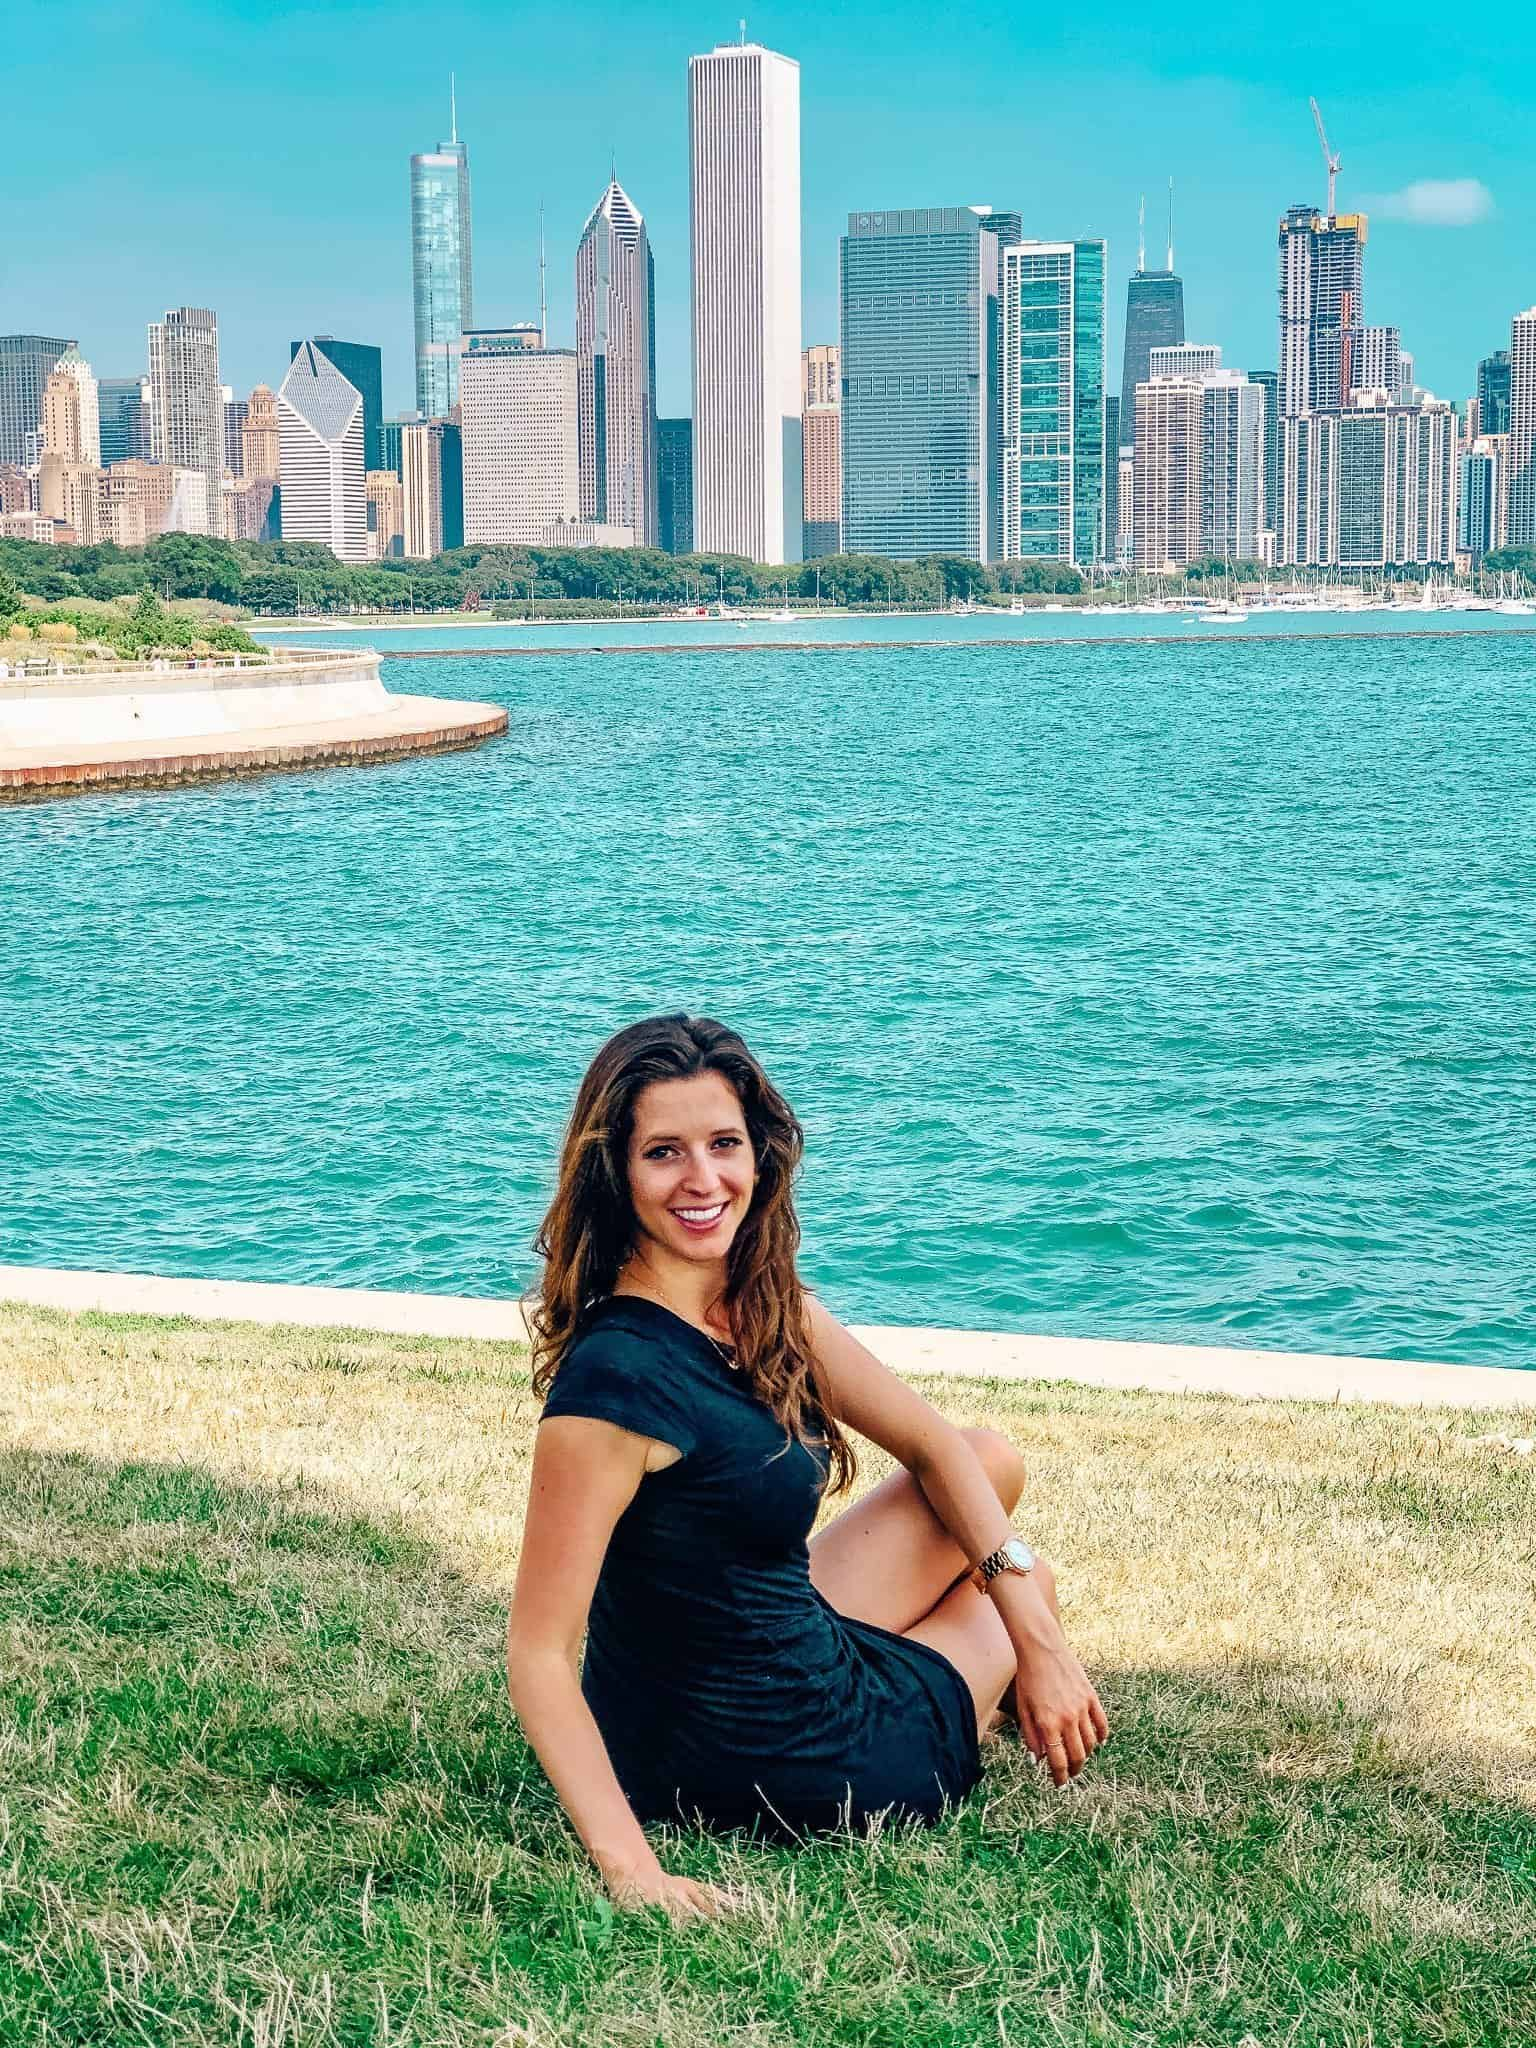 Top 5 Things to See in Chicago - Chicago Skyline from Adler Planetarium